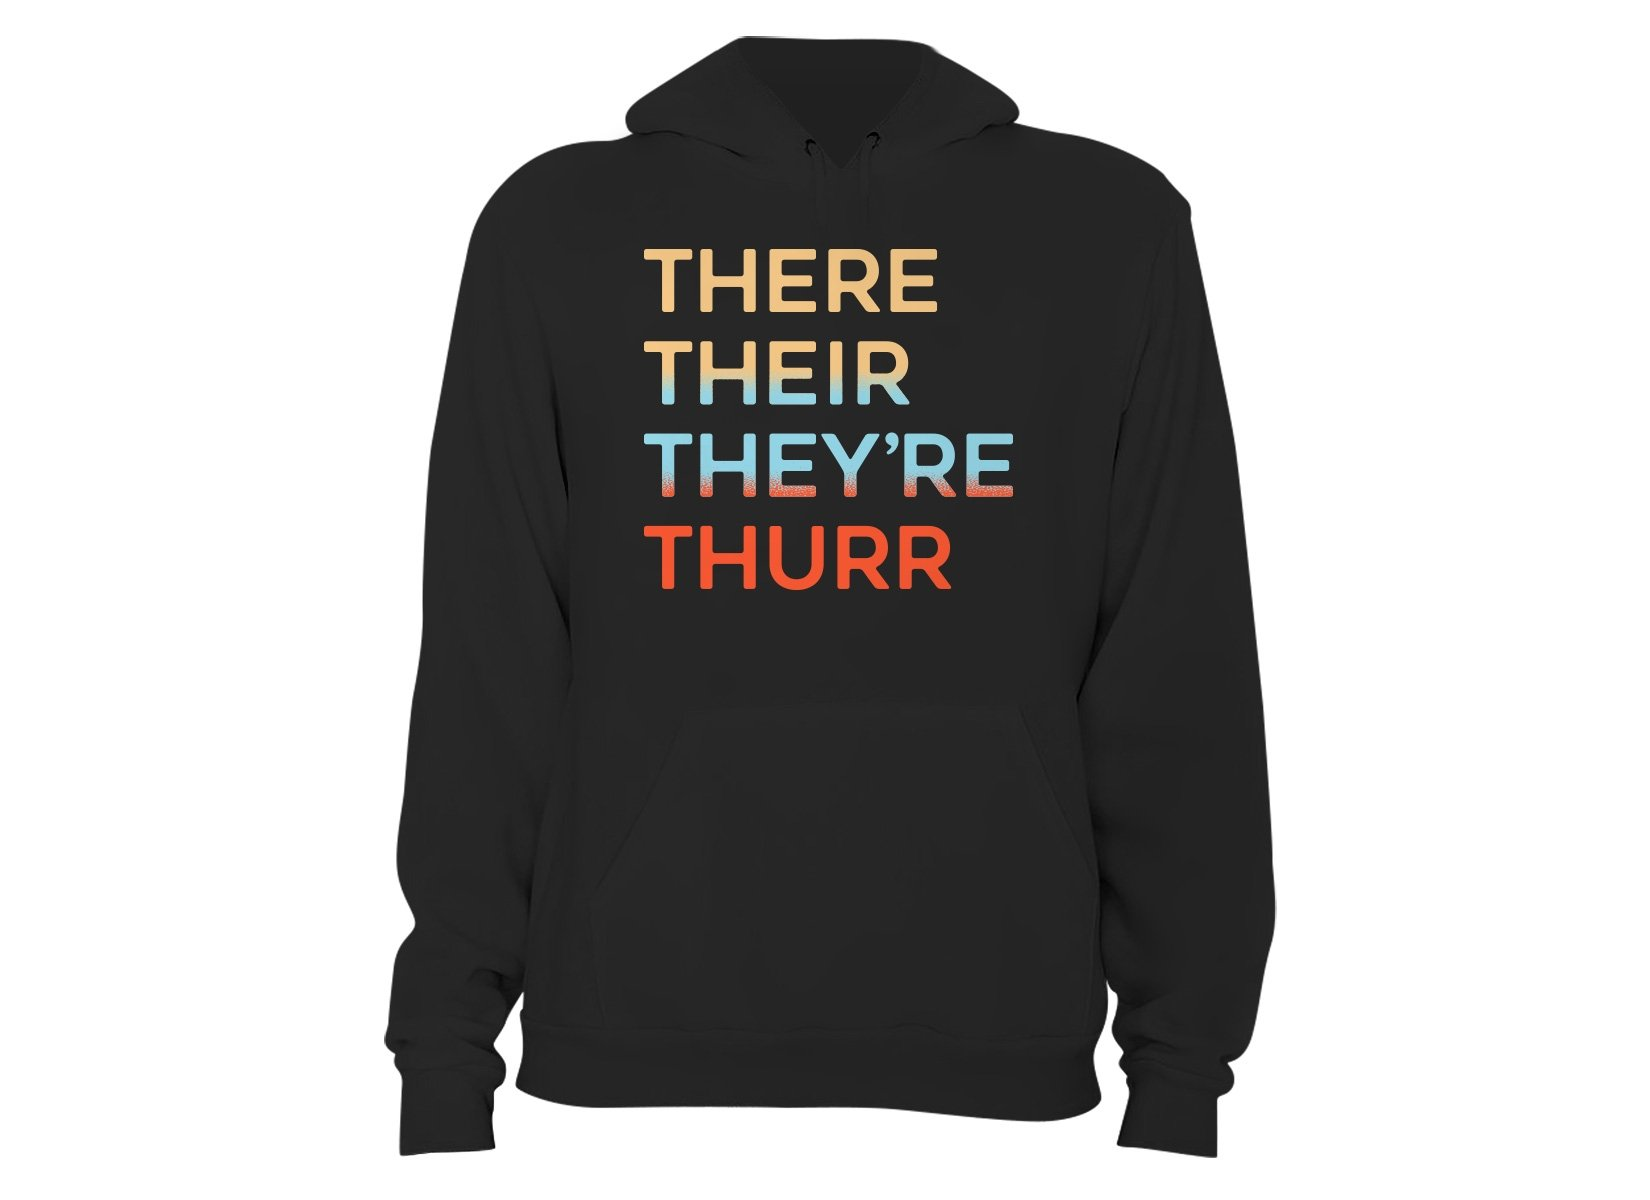 There Their They're Thurr on Hoodie